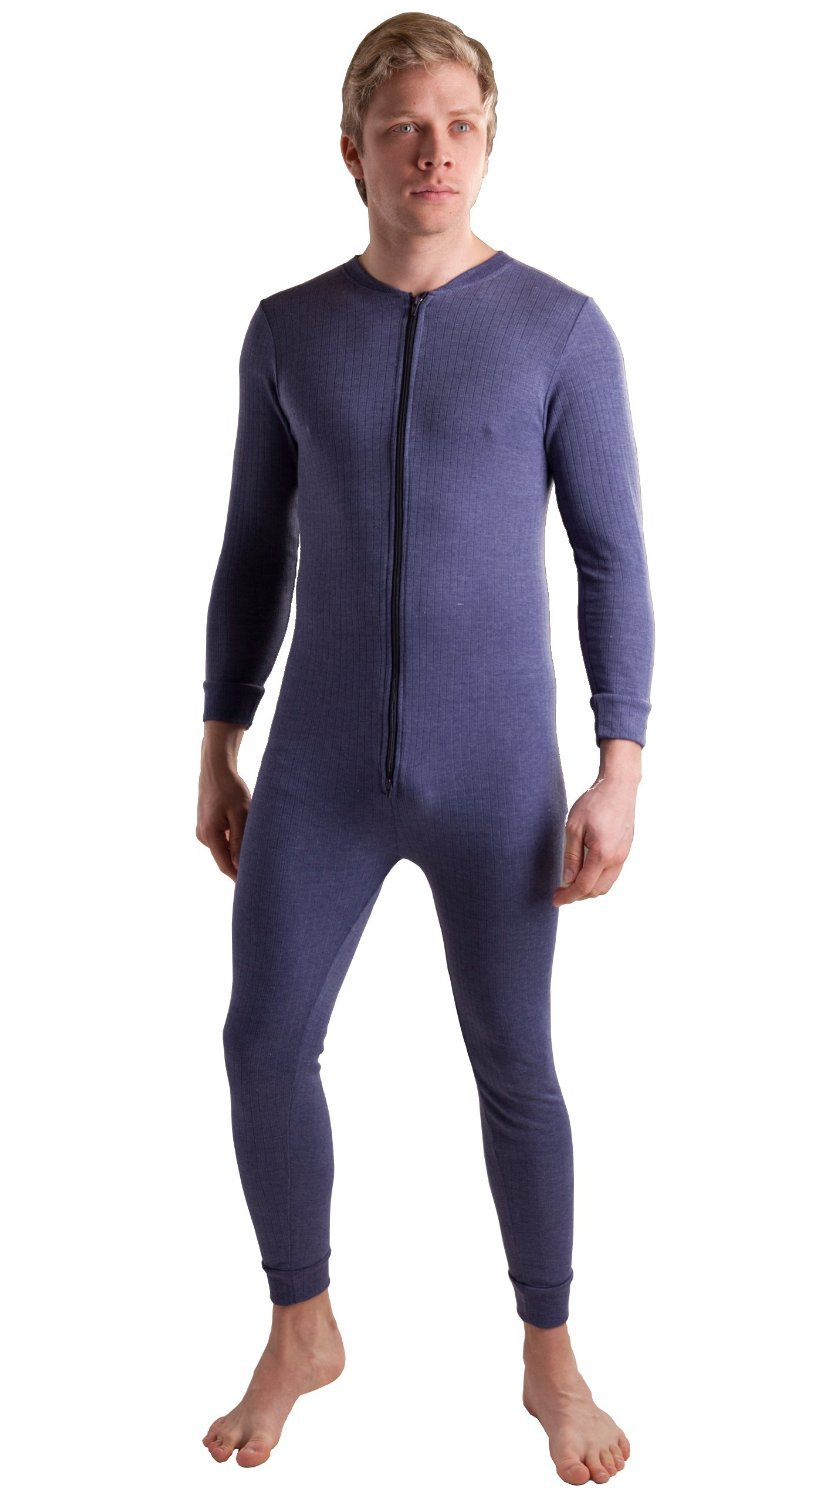 Octave Mens Thermal Underwear All in One Union Suit with Zipped Back Flap (Medium: Chest 36-38 inches, Charcoal) by Octave